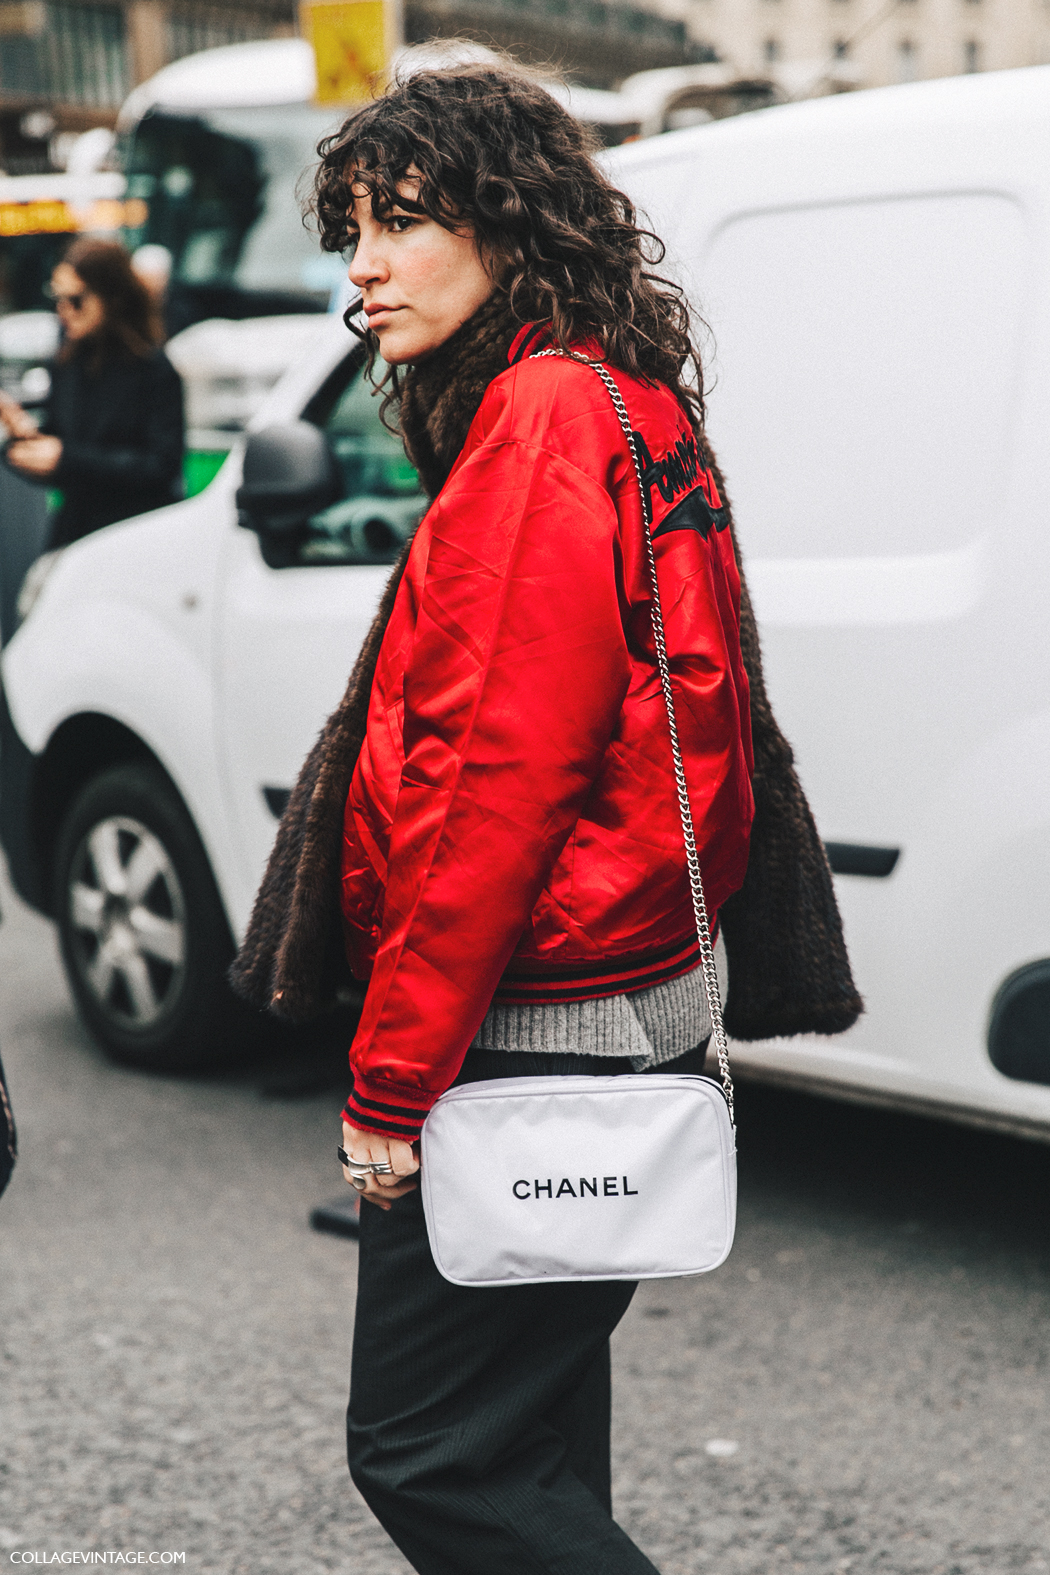 PFW-Paris_Fashion_Week_Fall_2016-Street_Style-Collage_Vintage-Stella_McCartney-Berta-Bomber-CHanel_Bag.-